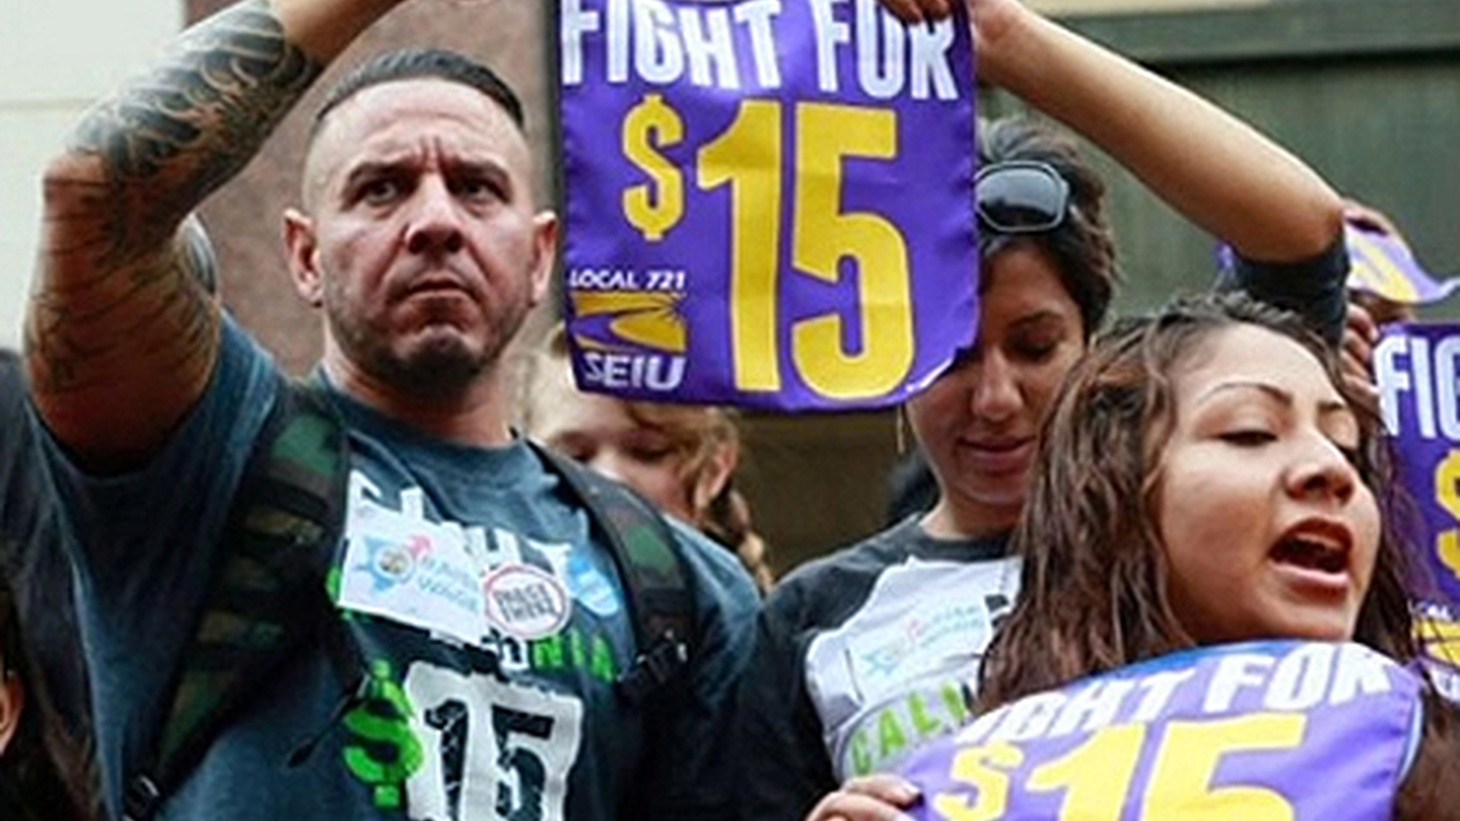 Governor Brown has proposed an increase in California's minimum wage to $15 an hour by 2022. How will the hike impact workers and businesses, both big and small?